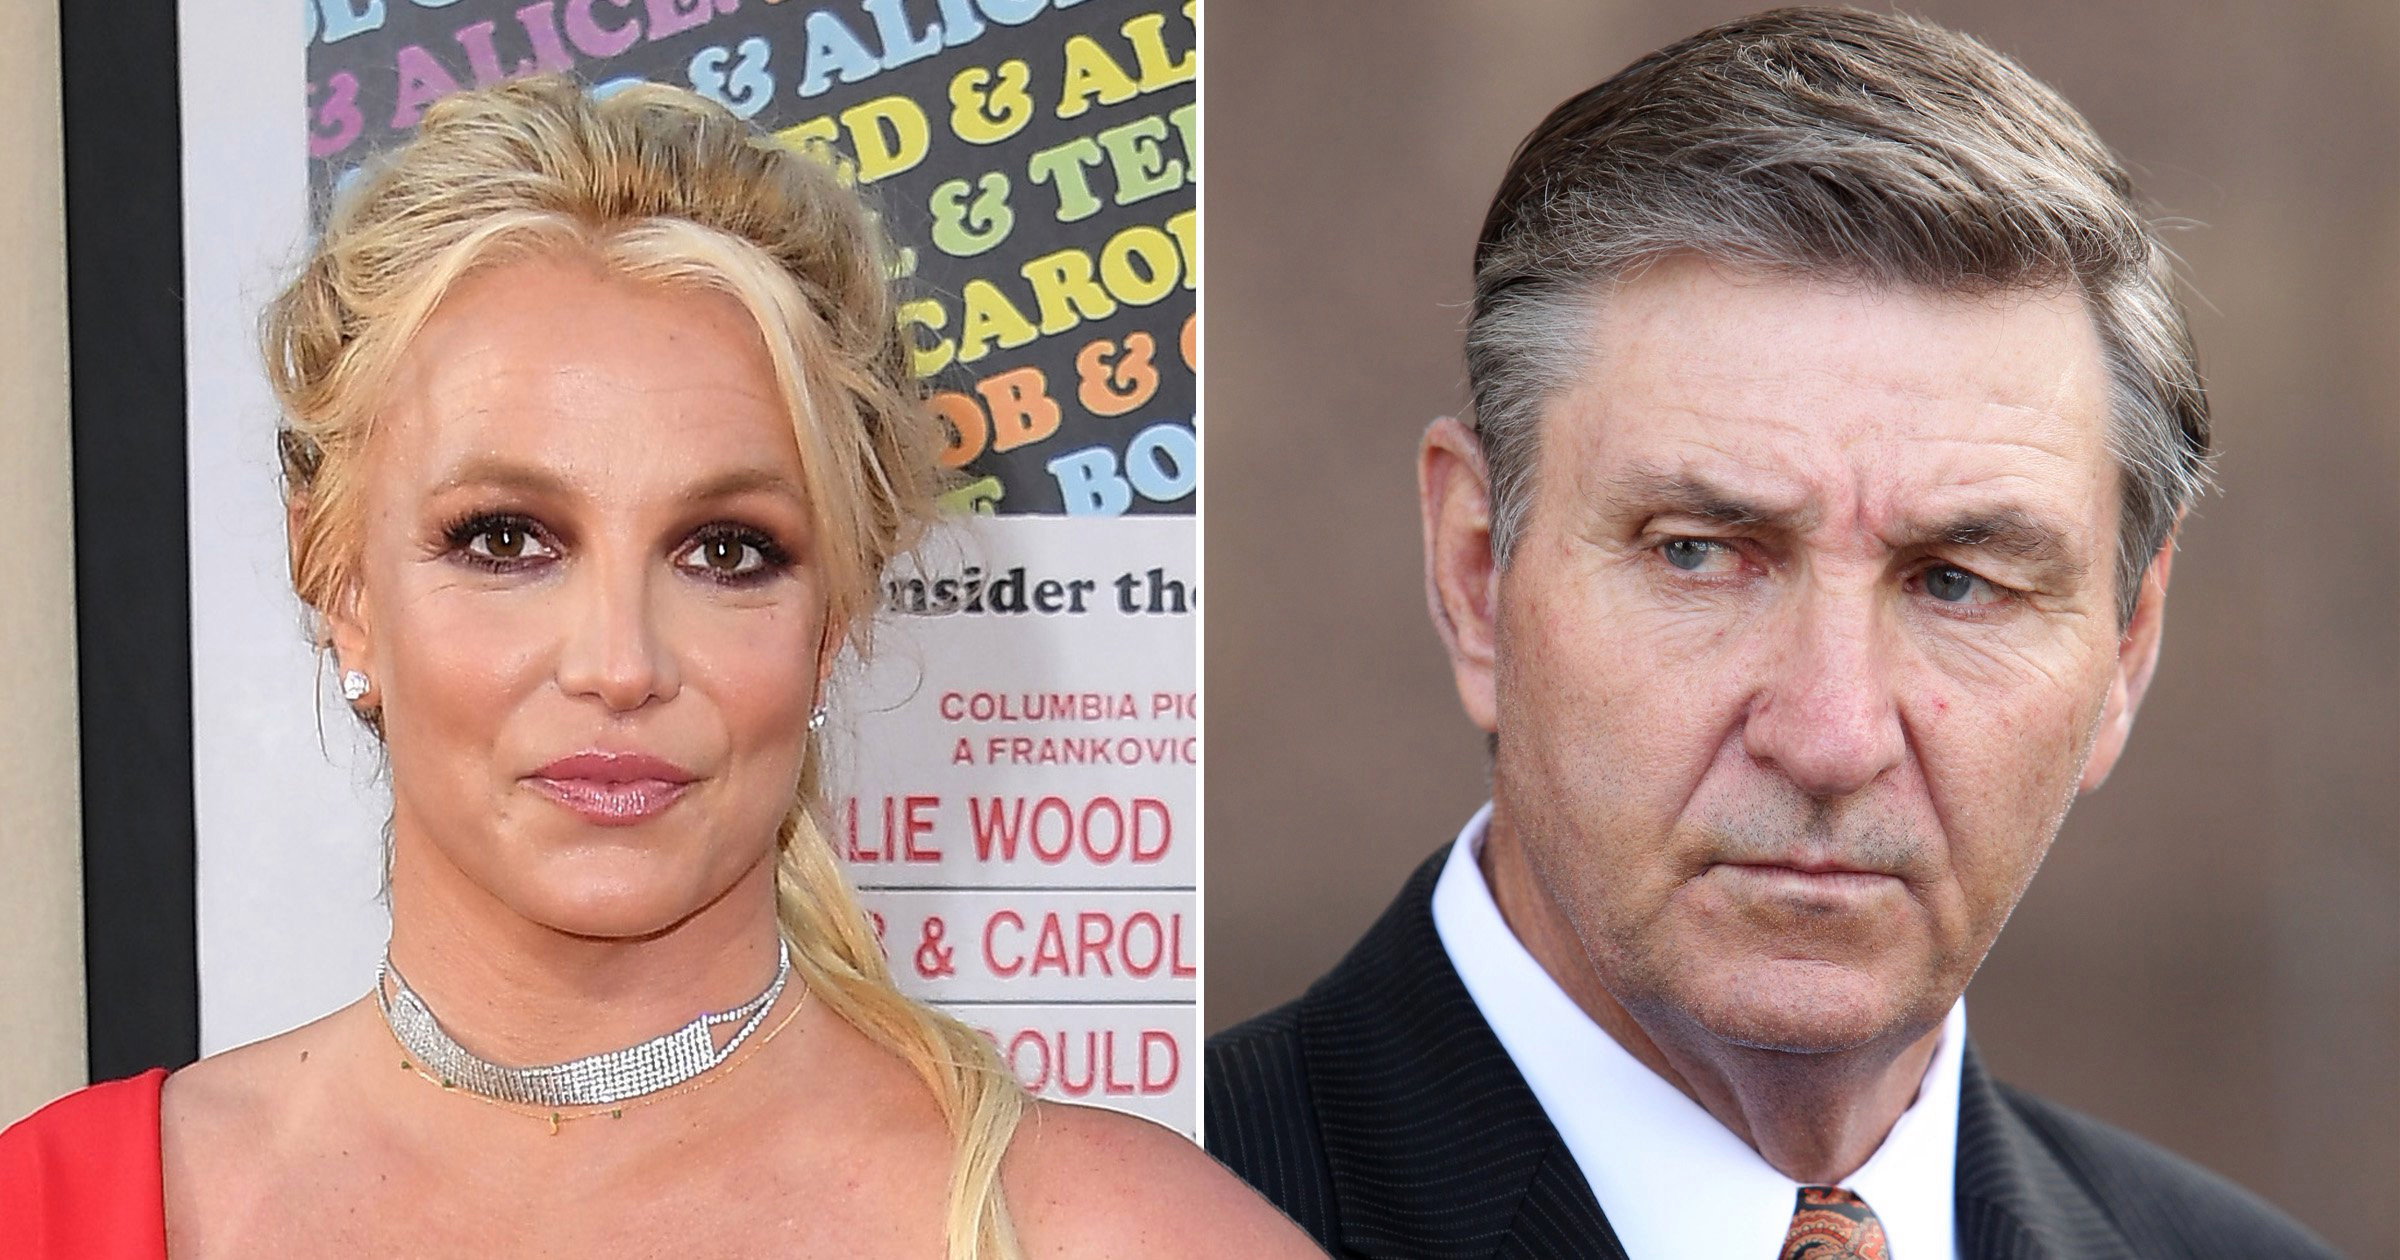 Britney Spears' dad Jamie was 'protective but not overbearing' after conservatorship, reveals songwriter